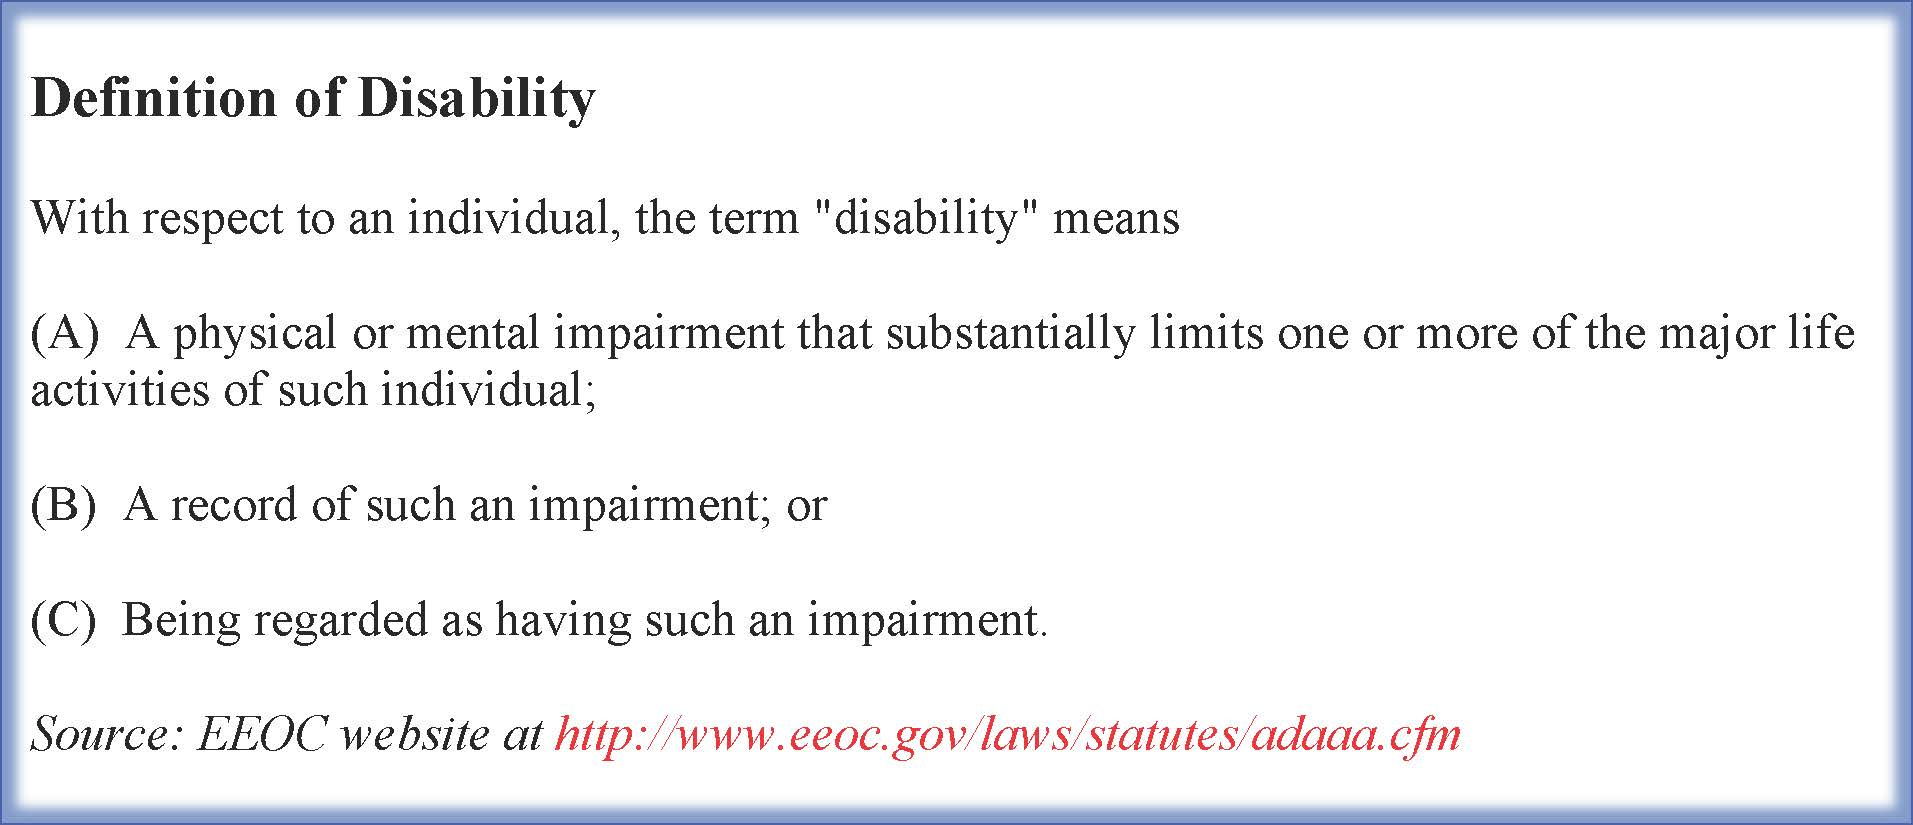 "Definition of Disability  With respect to an individual, the term ""disability"" means  (A)  A physical or mental impairment that substantially limits one or more of the major life activities of such individual;  (B)  A record of such an impairment; or  (C)  Being regarded as having such an impairment.  Source: EEOC website at http://www.eeoc.gov/laws/statutes/adaaa.cfm"